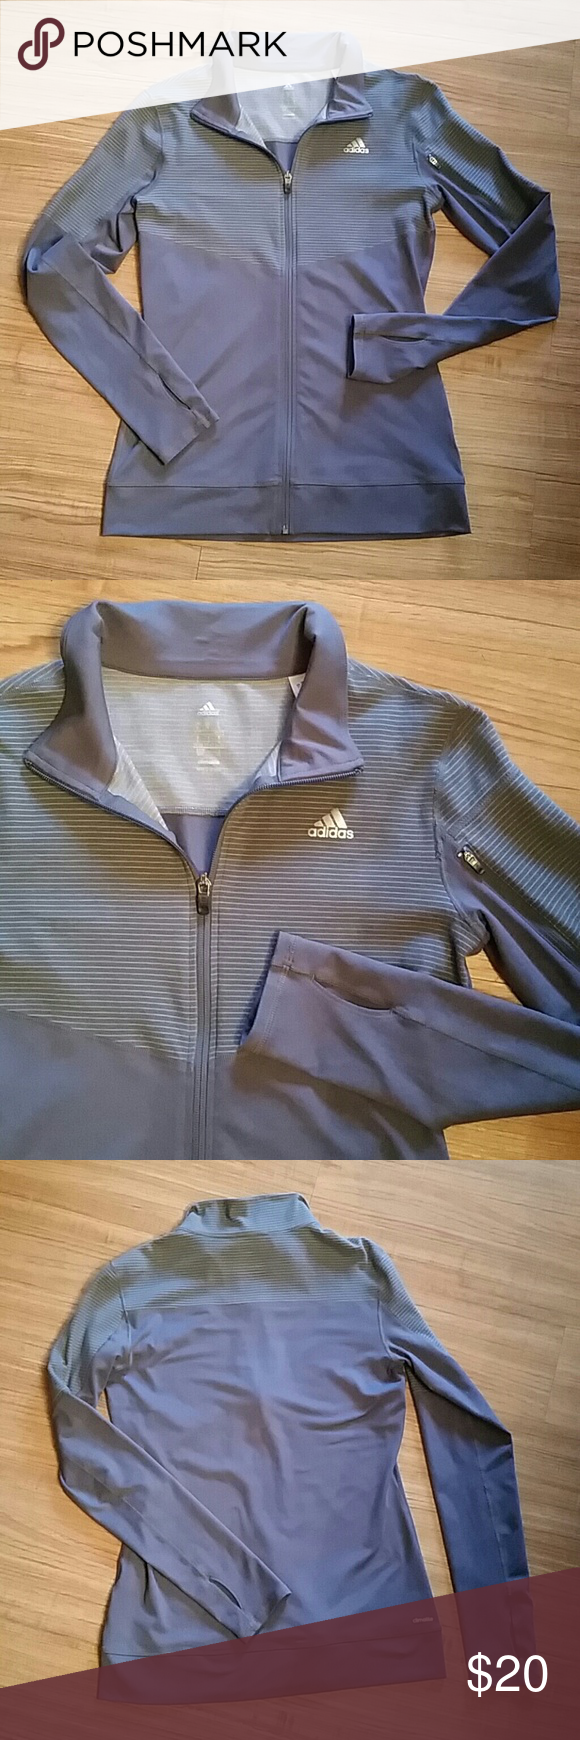 ADIDAS CLIMALITE FULL ZIPP UP JACKET Super stylish, cute and comfy full zipp up jacket by Adidas in excellent.Would be great for running. No stains, no holes, no odors. Color: grey. Adidas Jackets & Coats